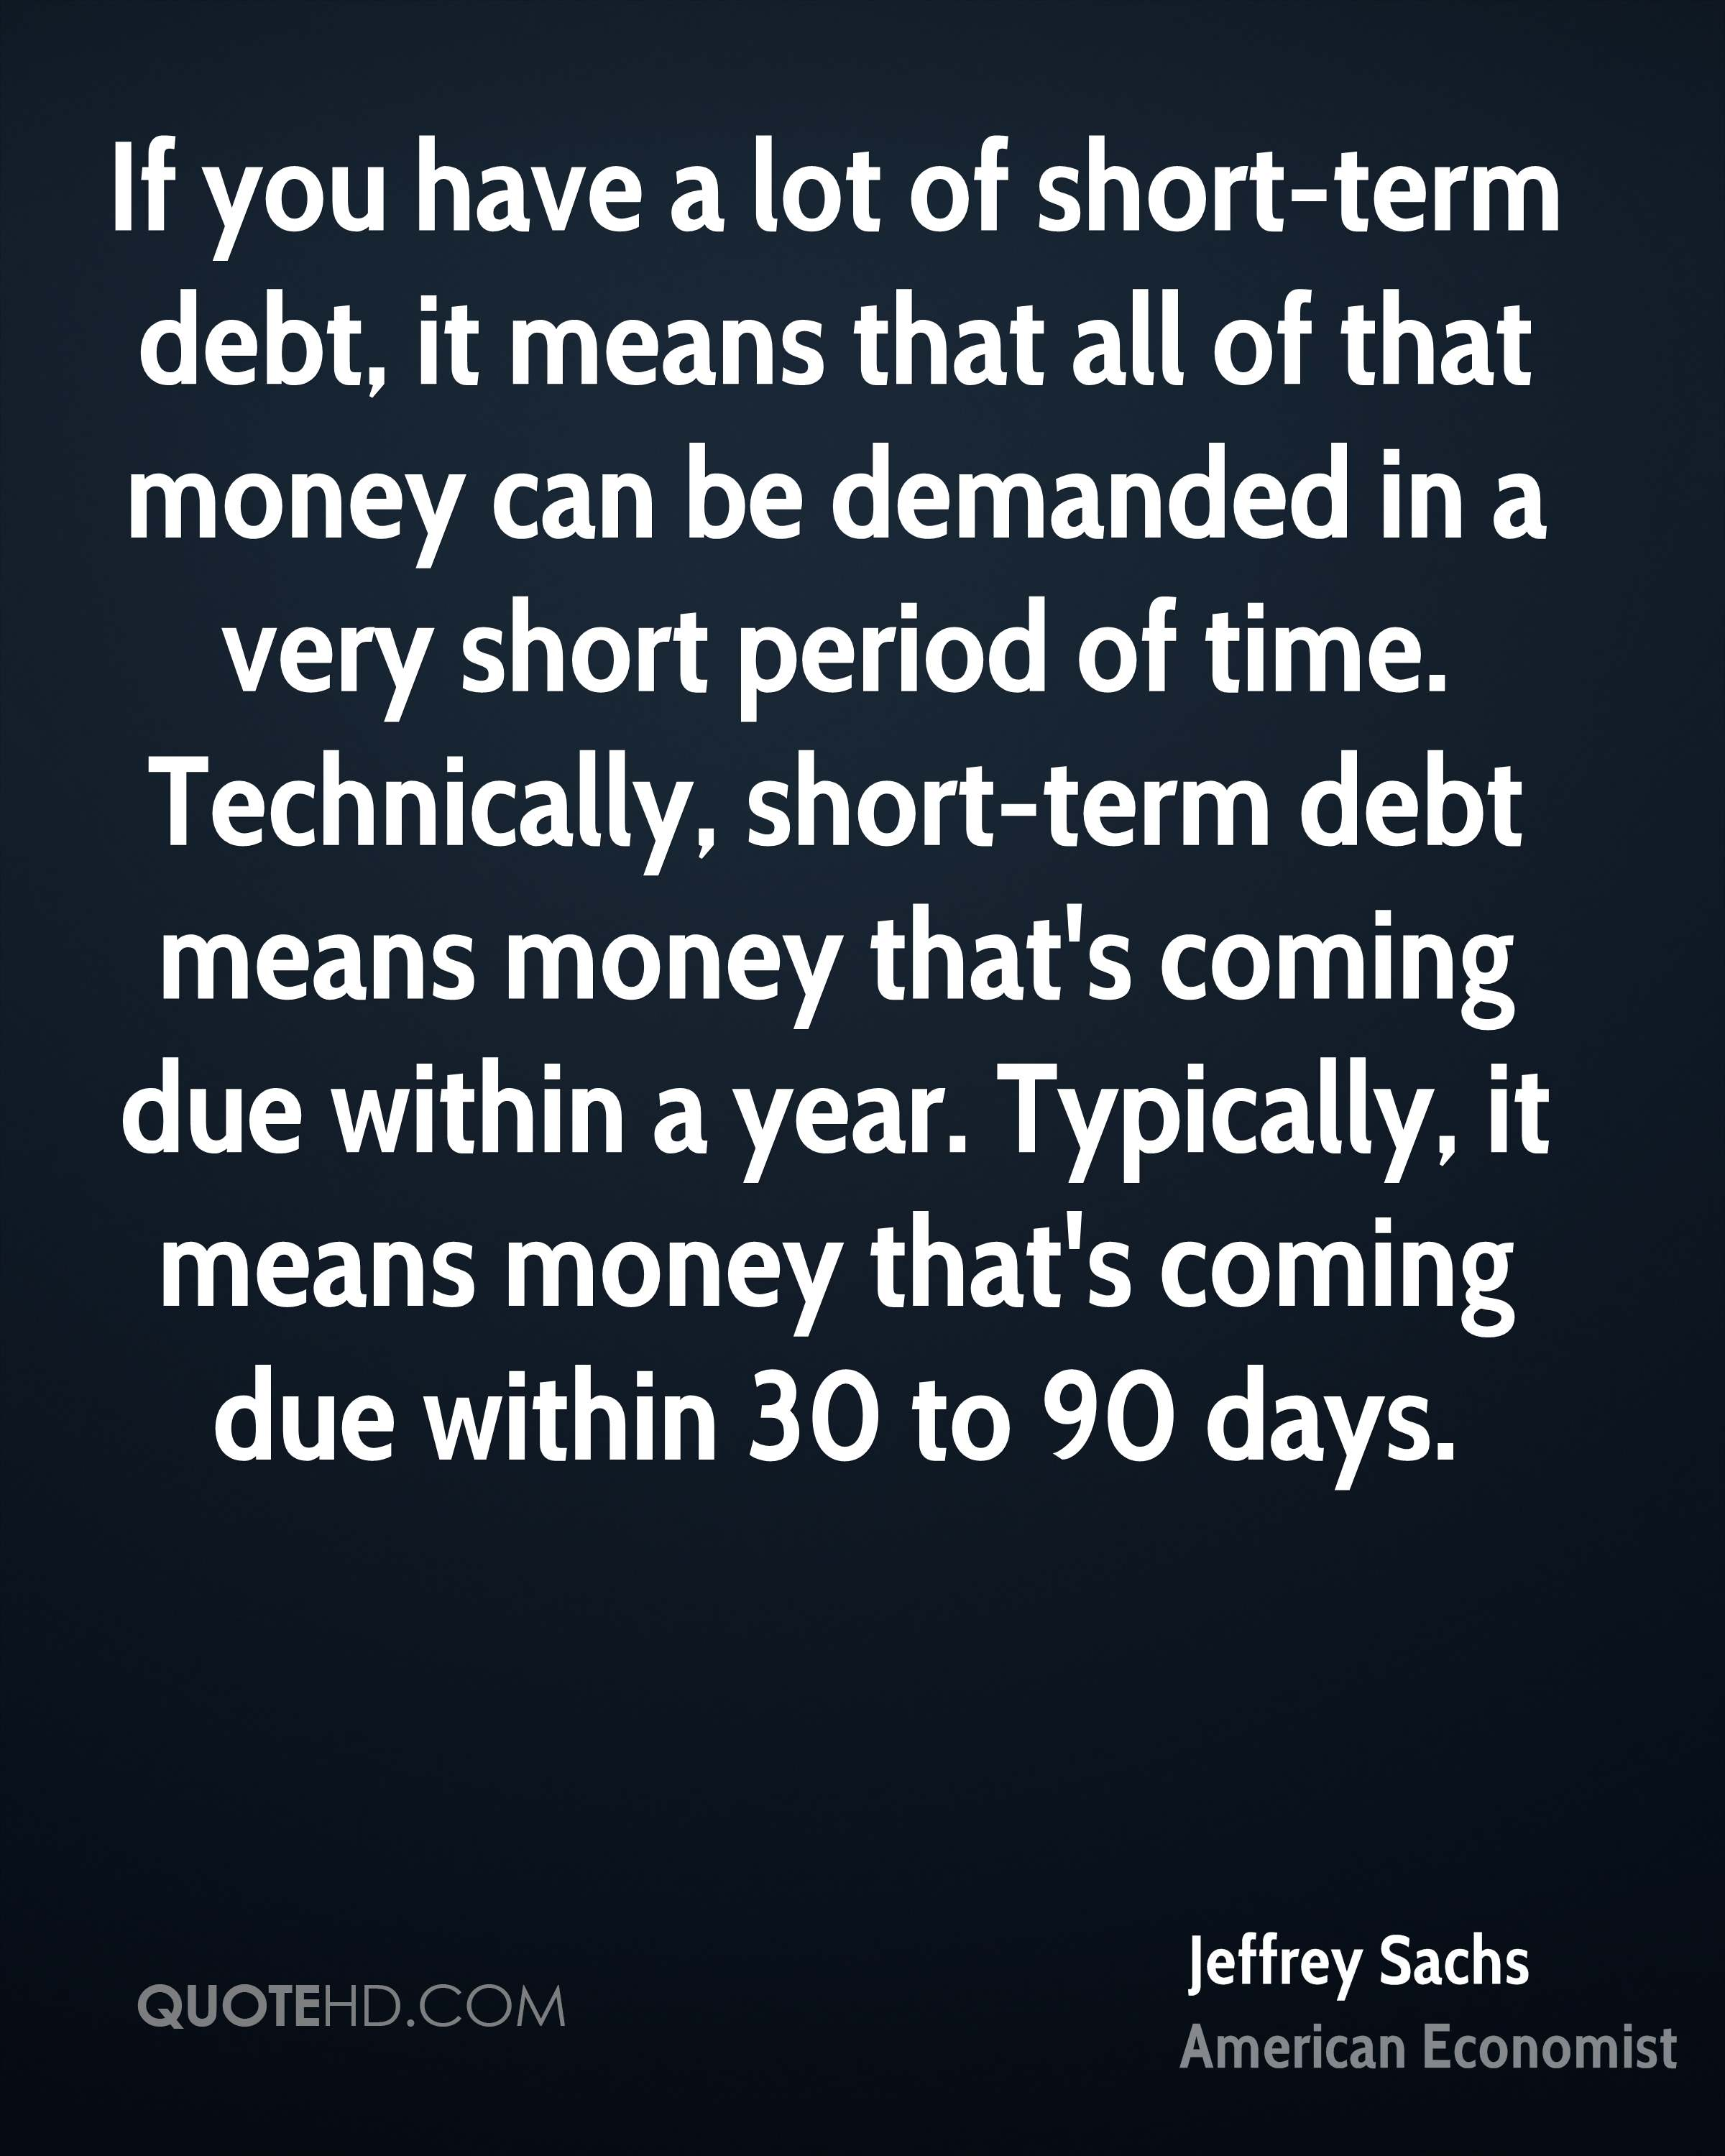 If you have a lot of short-term debt, it means that all of that money can be demanded in a very short period of time. Technically, short-term debt means money that's coming due within a year. Typically, it means money that's coming due within 30 to 90 days.